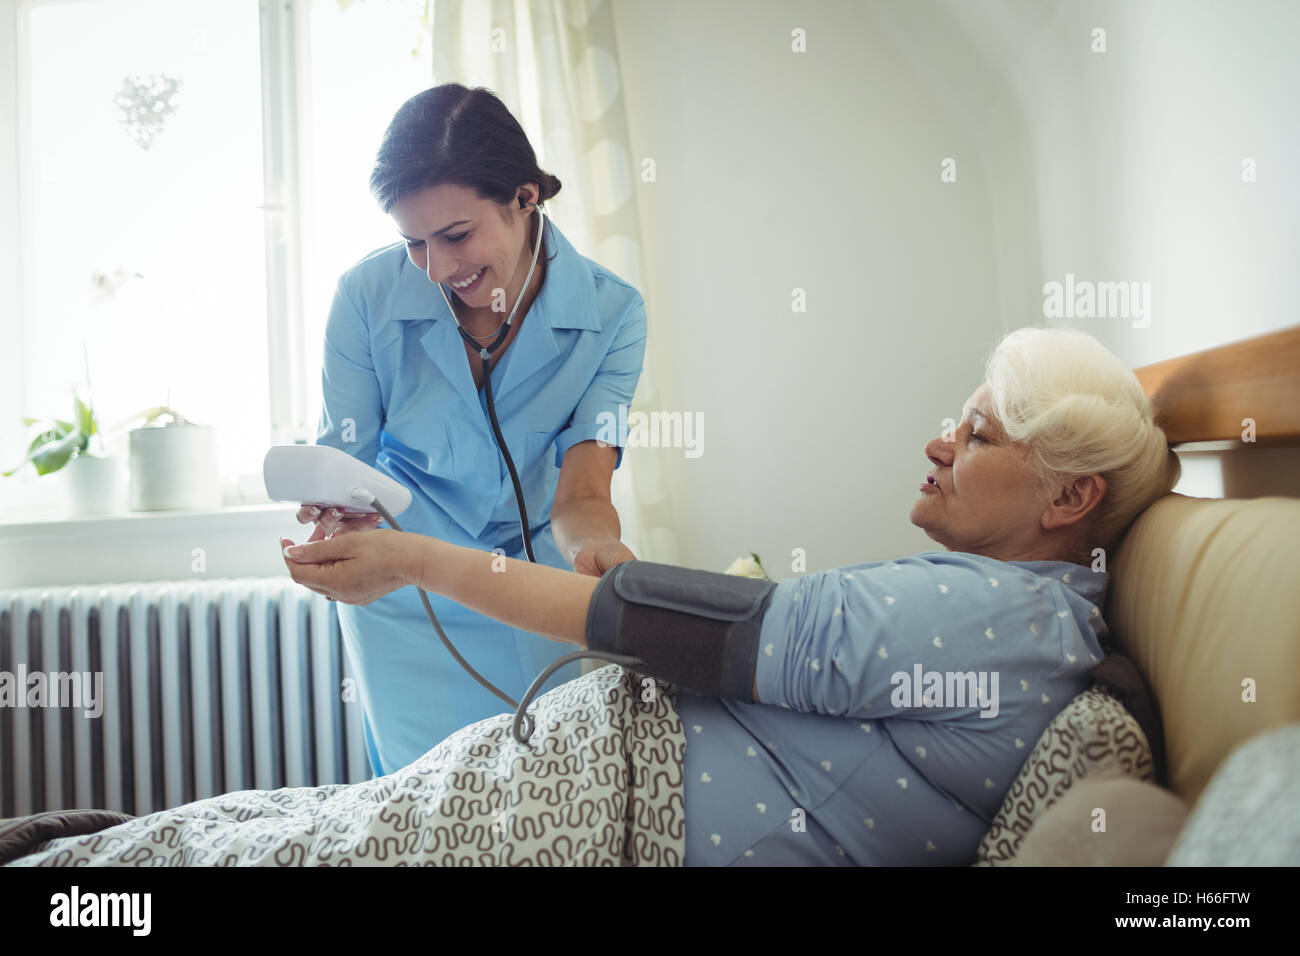 Nurse checking blood pressure of senior woman - Stock Image